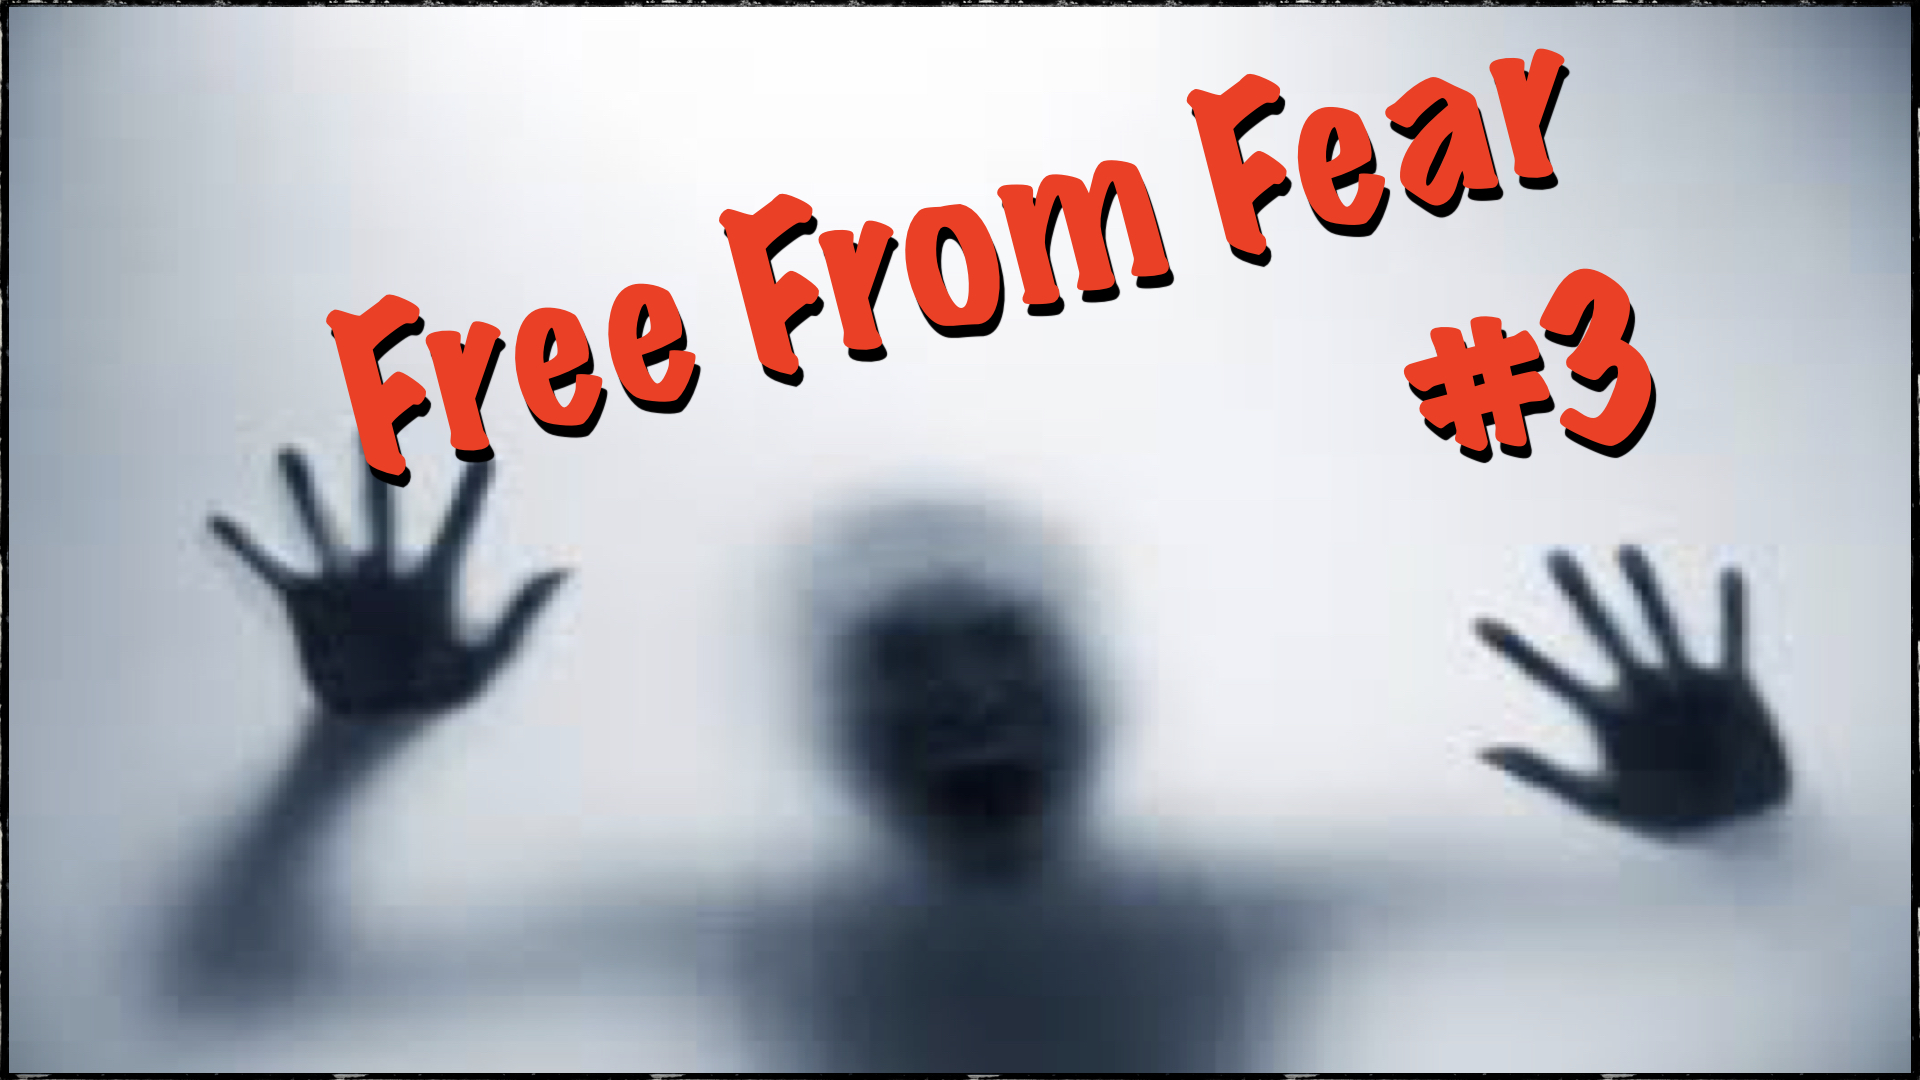 Free From Fear 3 2142018 50644 PM